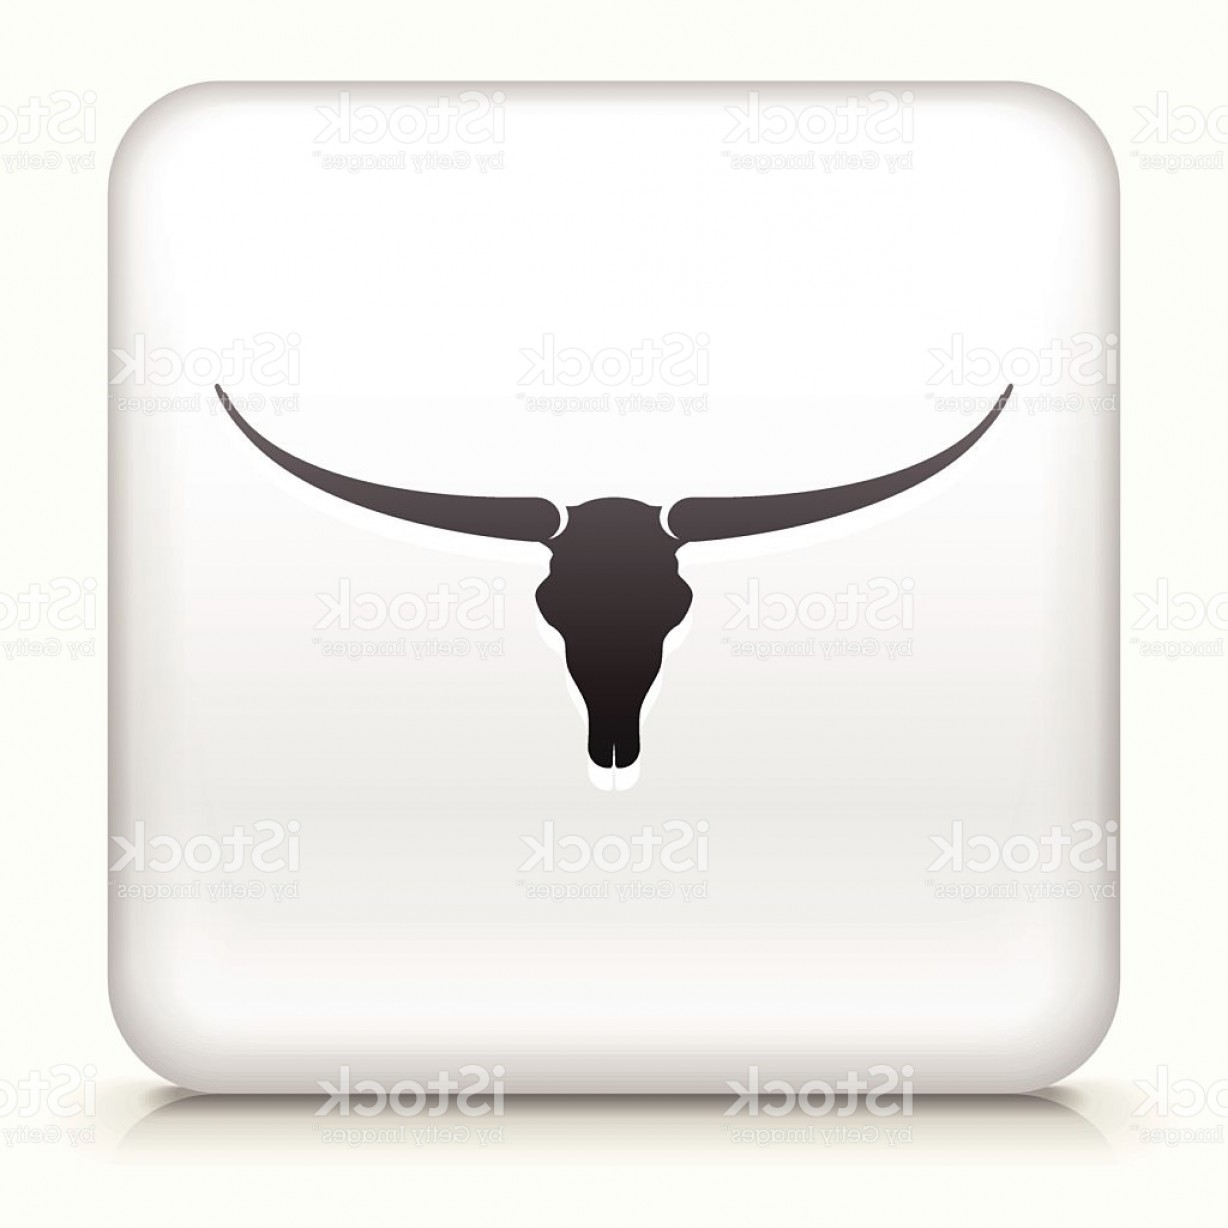 Longhorn Skull Vector: Royalty Free Vector Icon Button With Bull Skull Icon Gm